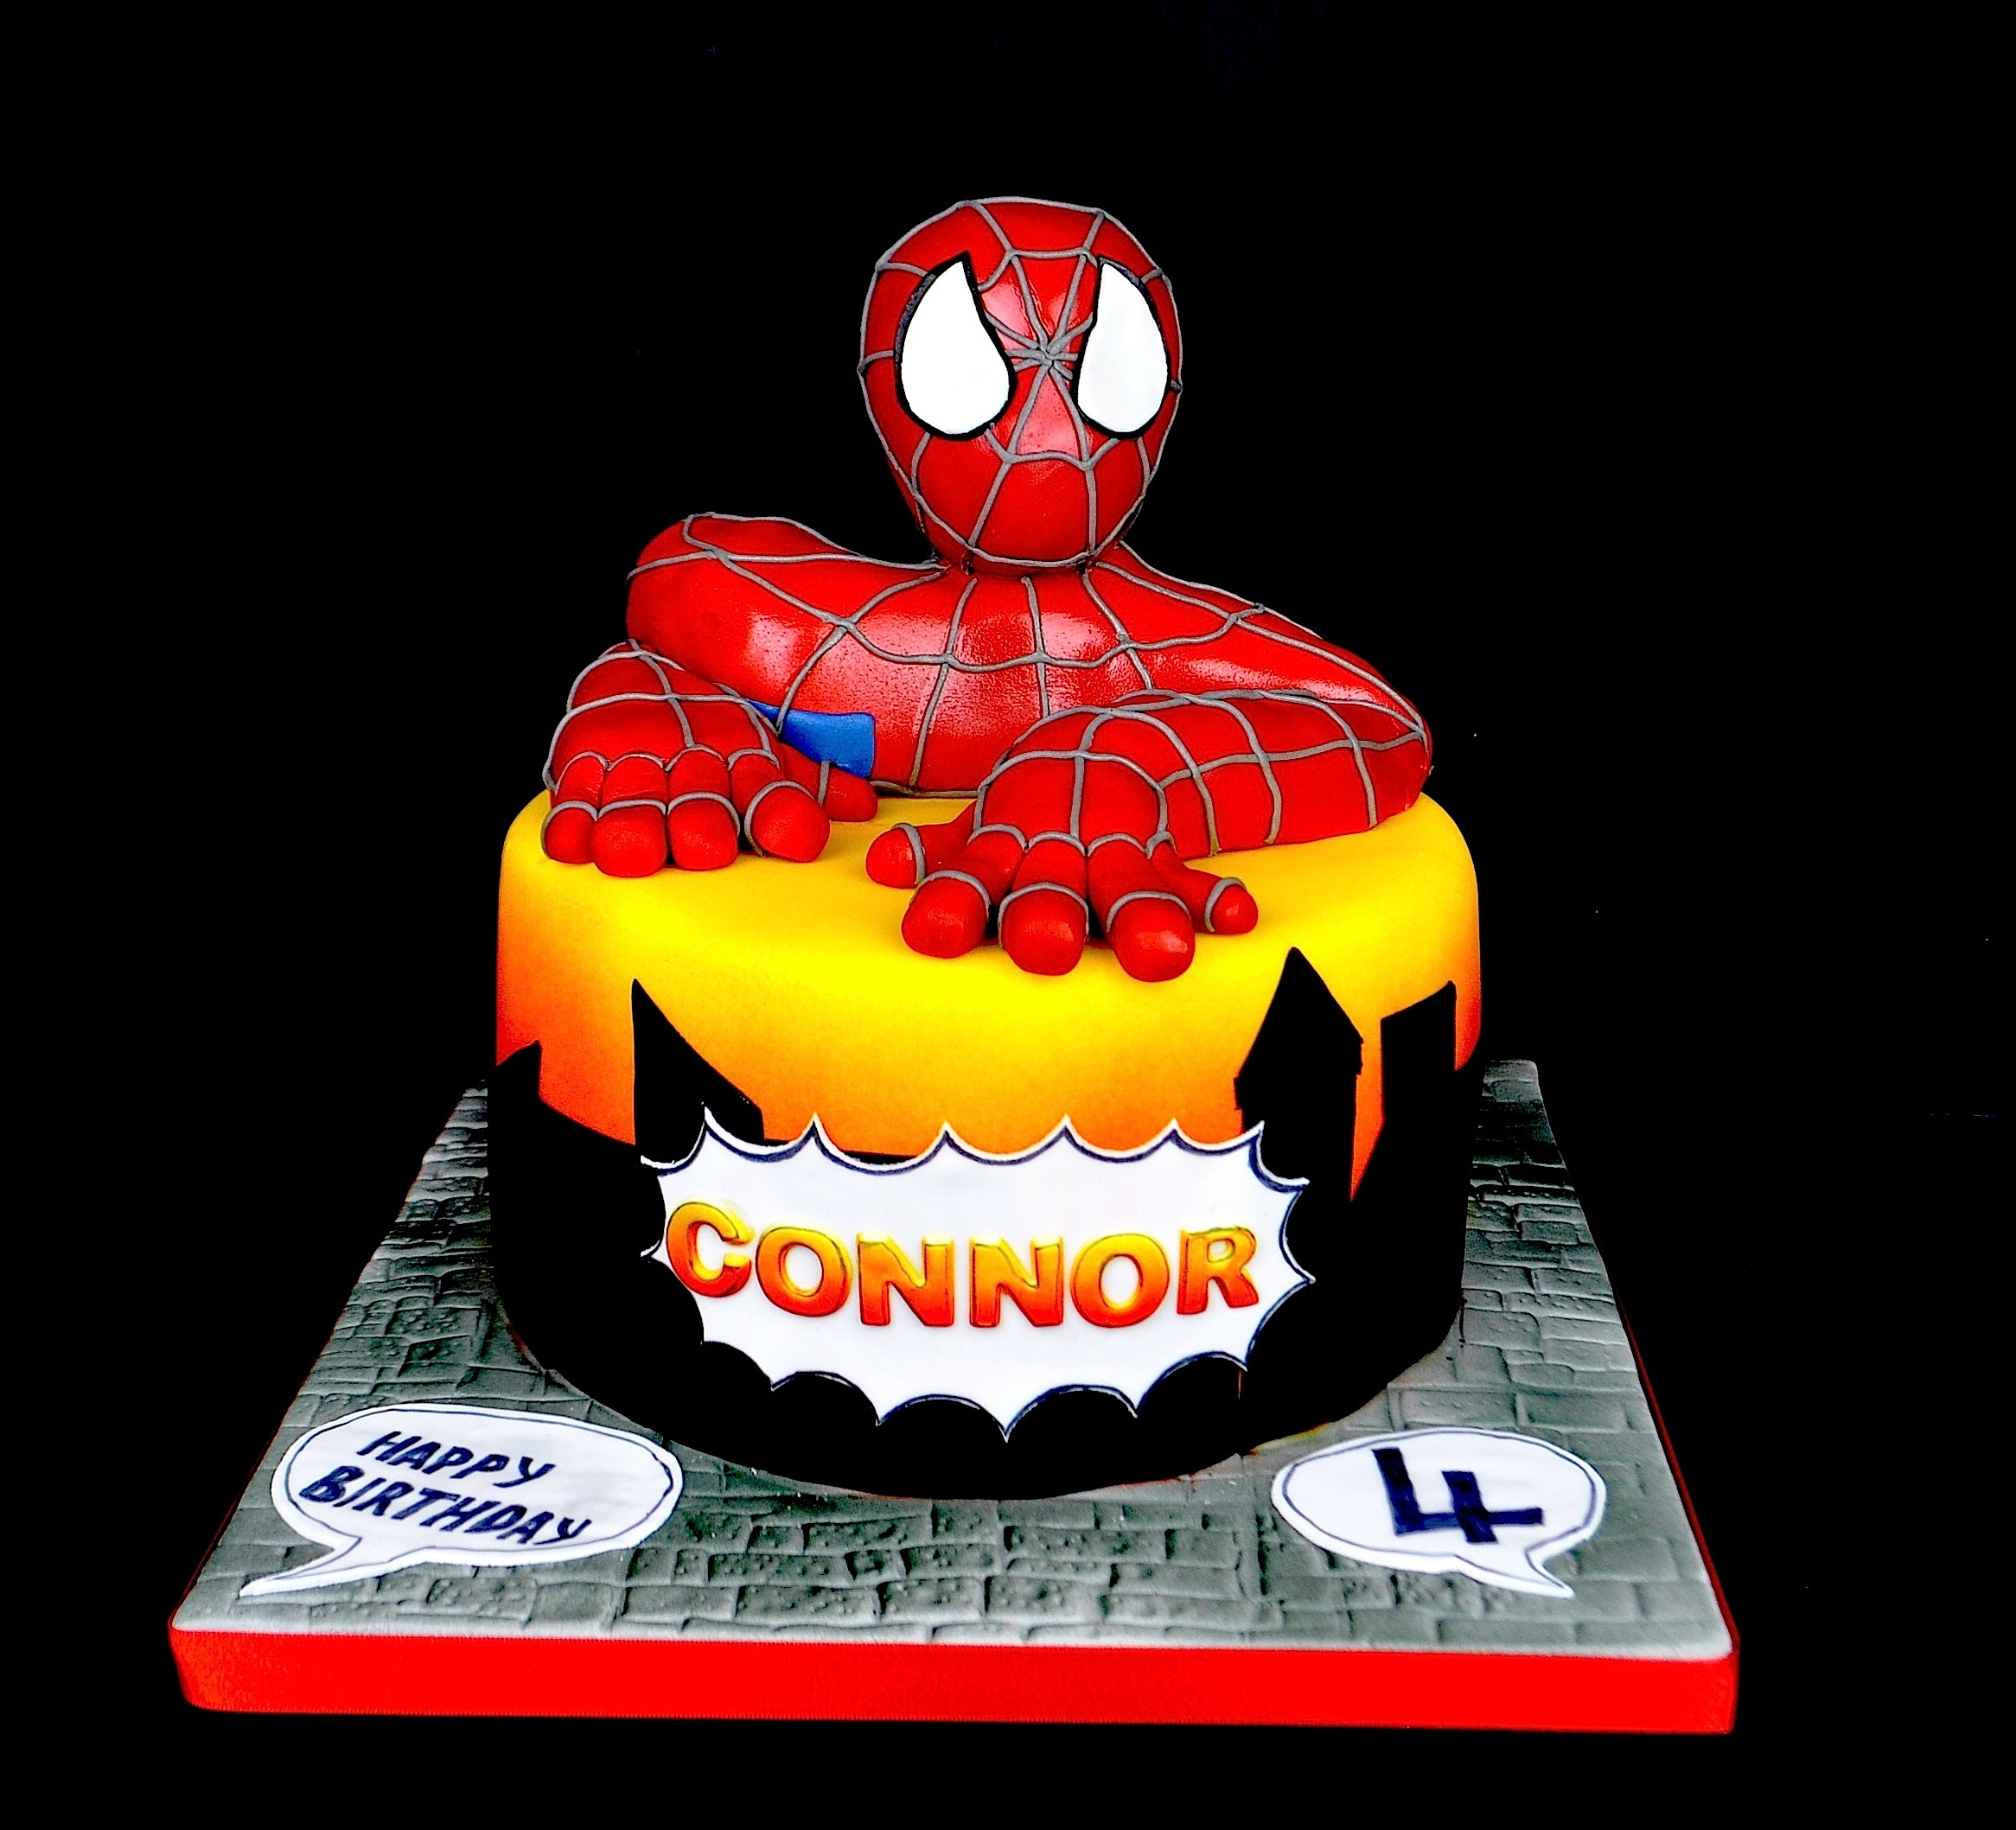 Spiderman Cake I made this cake for my son who was 4 last weekend. he loves spiderman and preceeded to pull his head straight off and eat it. Good job it...